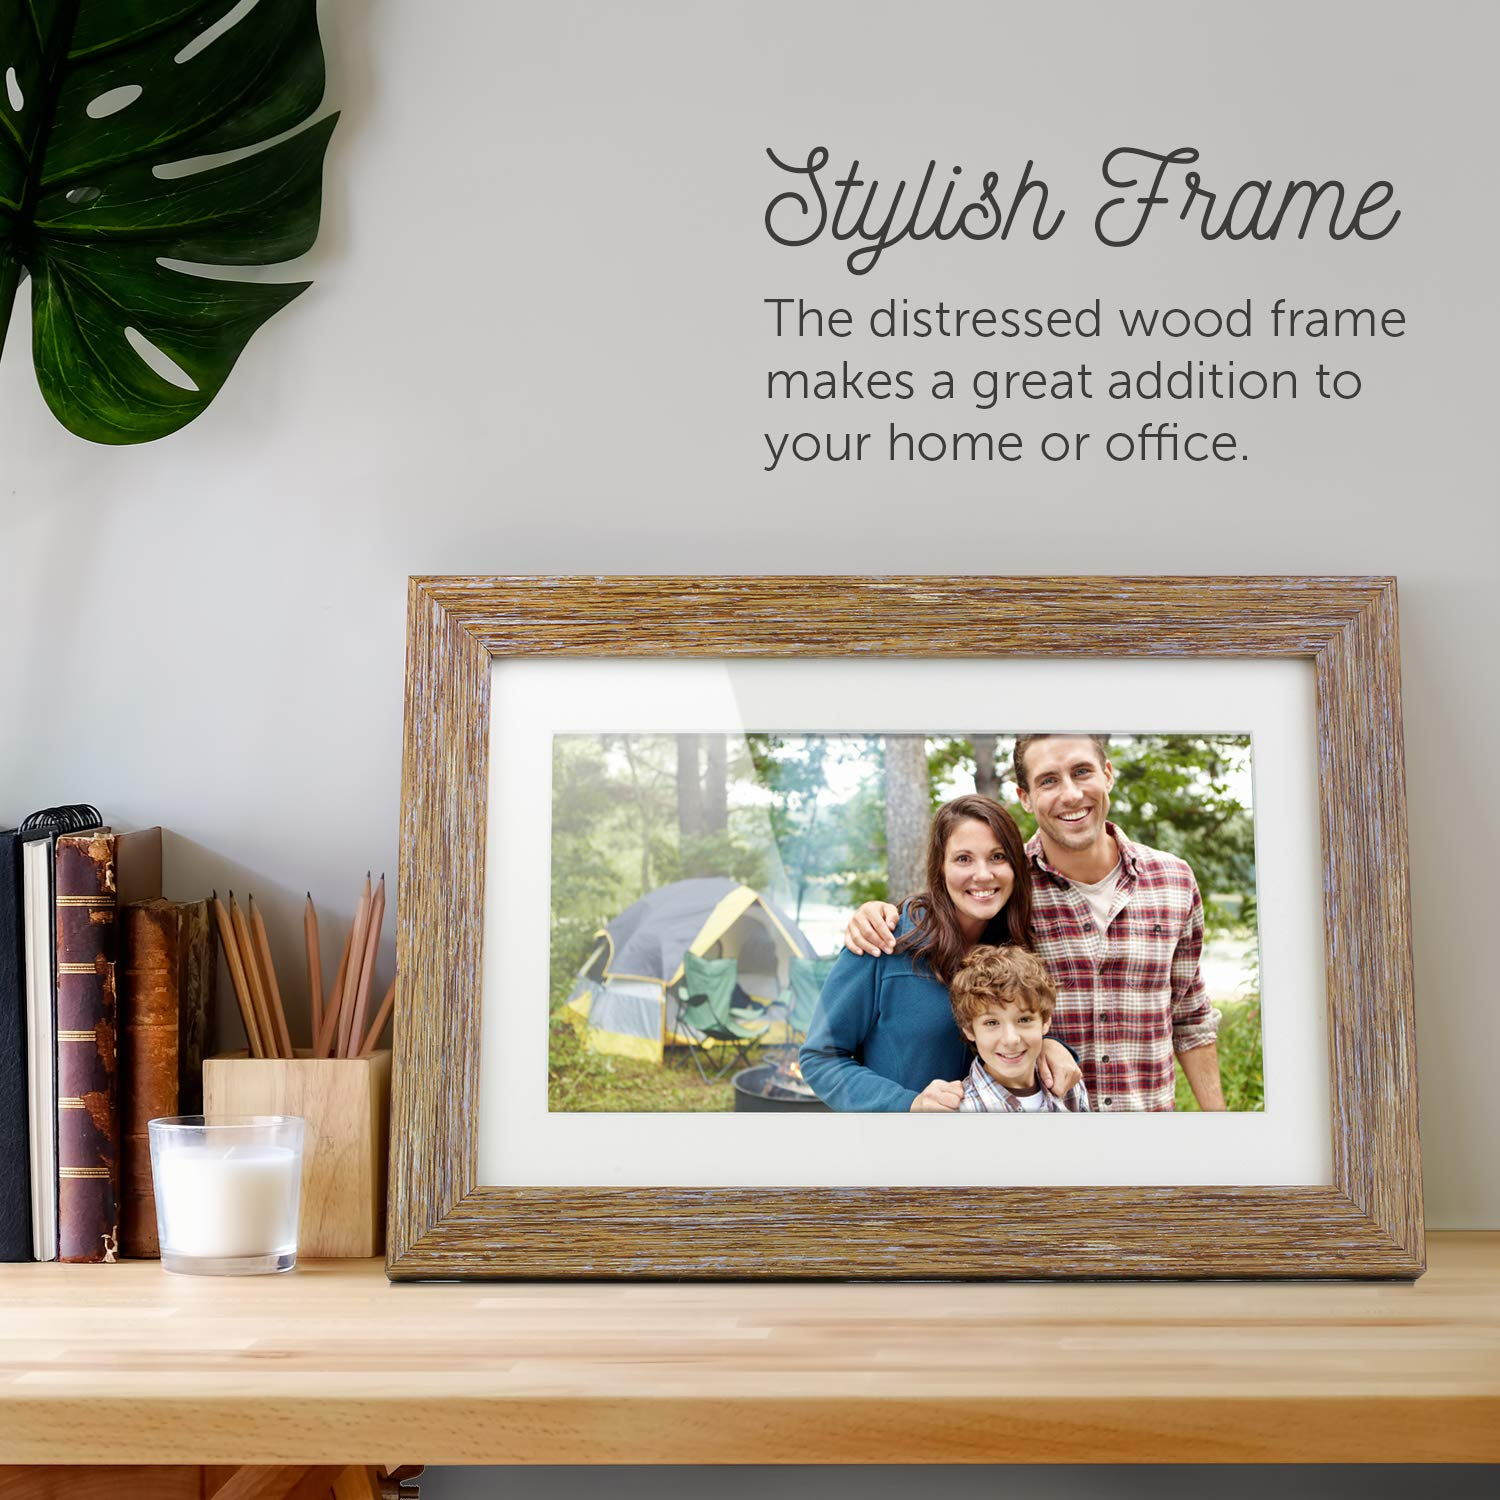 Aluratek (ADPFD10F) 10 inch Digital Photo Frame with Auto Slideshow, Distressed Wood Border, 1024 x 600, 16: 9 Aspect Ratio, Wall Mountable by Aluratek (Image #2)